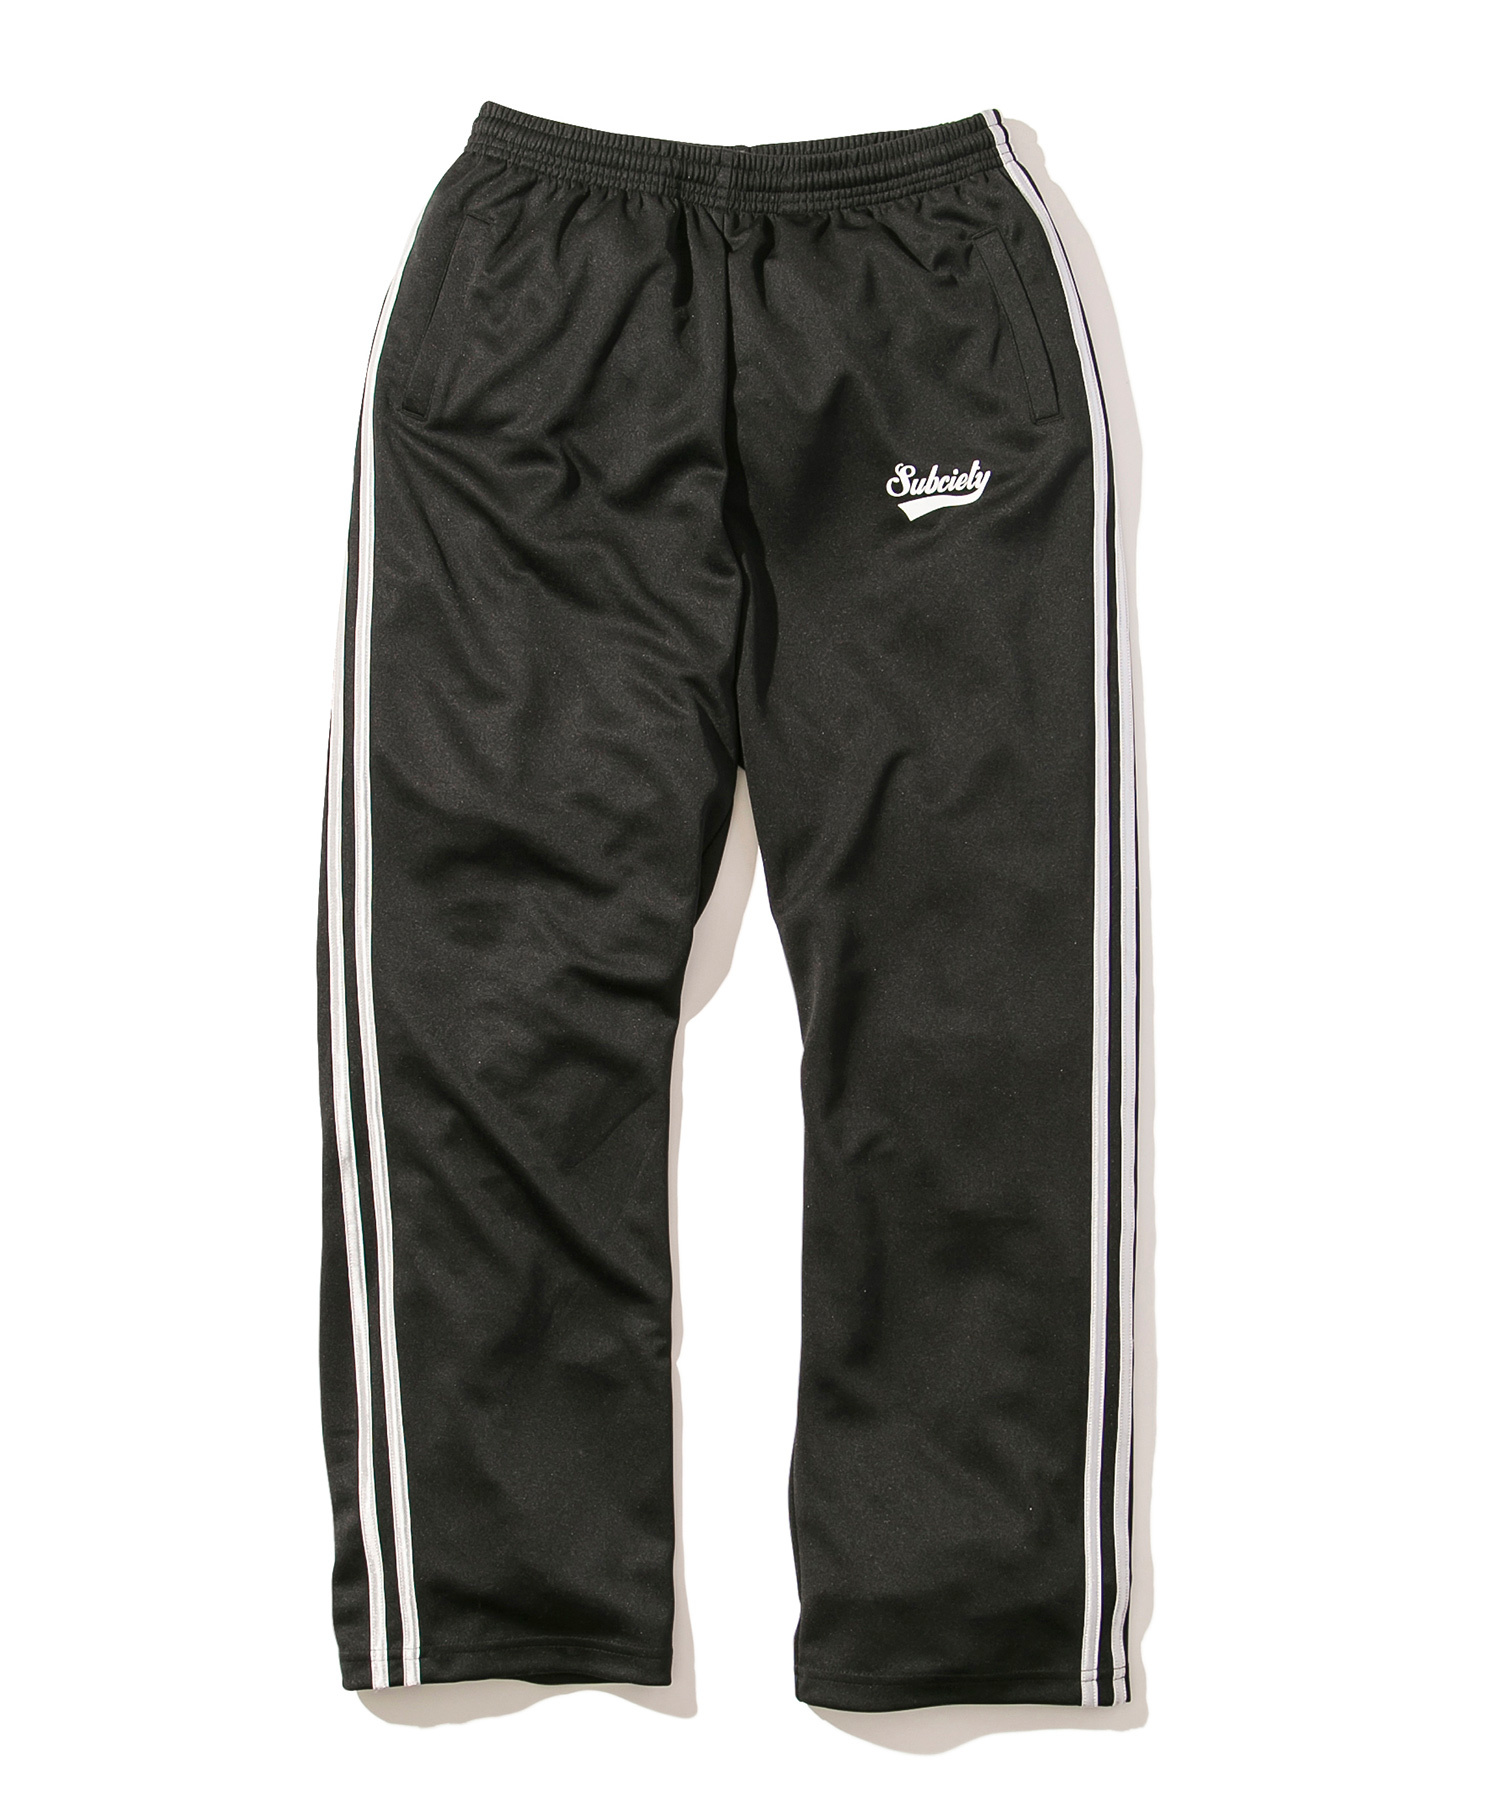 【Subciety | サブサエティ】TRACK PANTS-GLORIOUS-